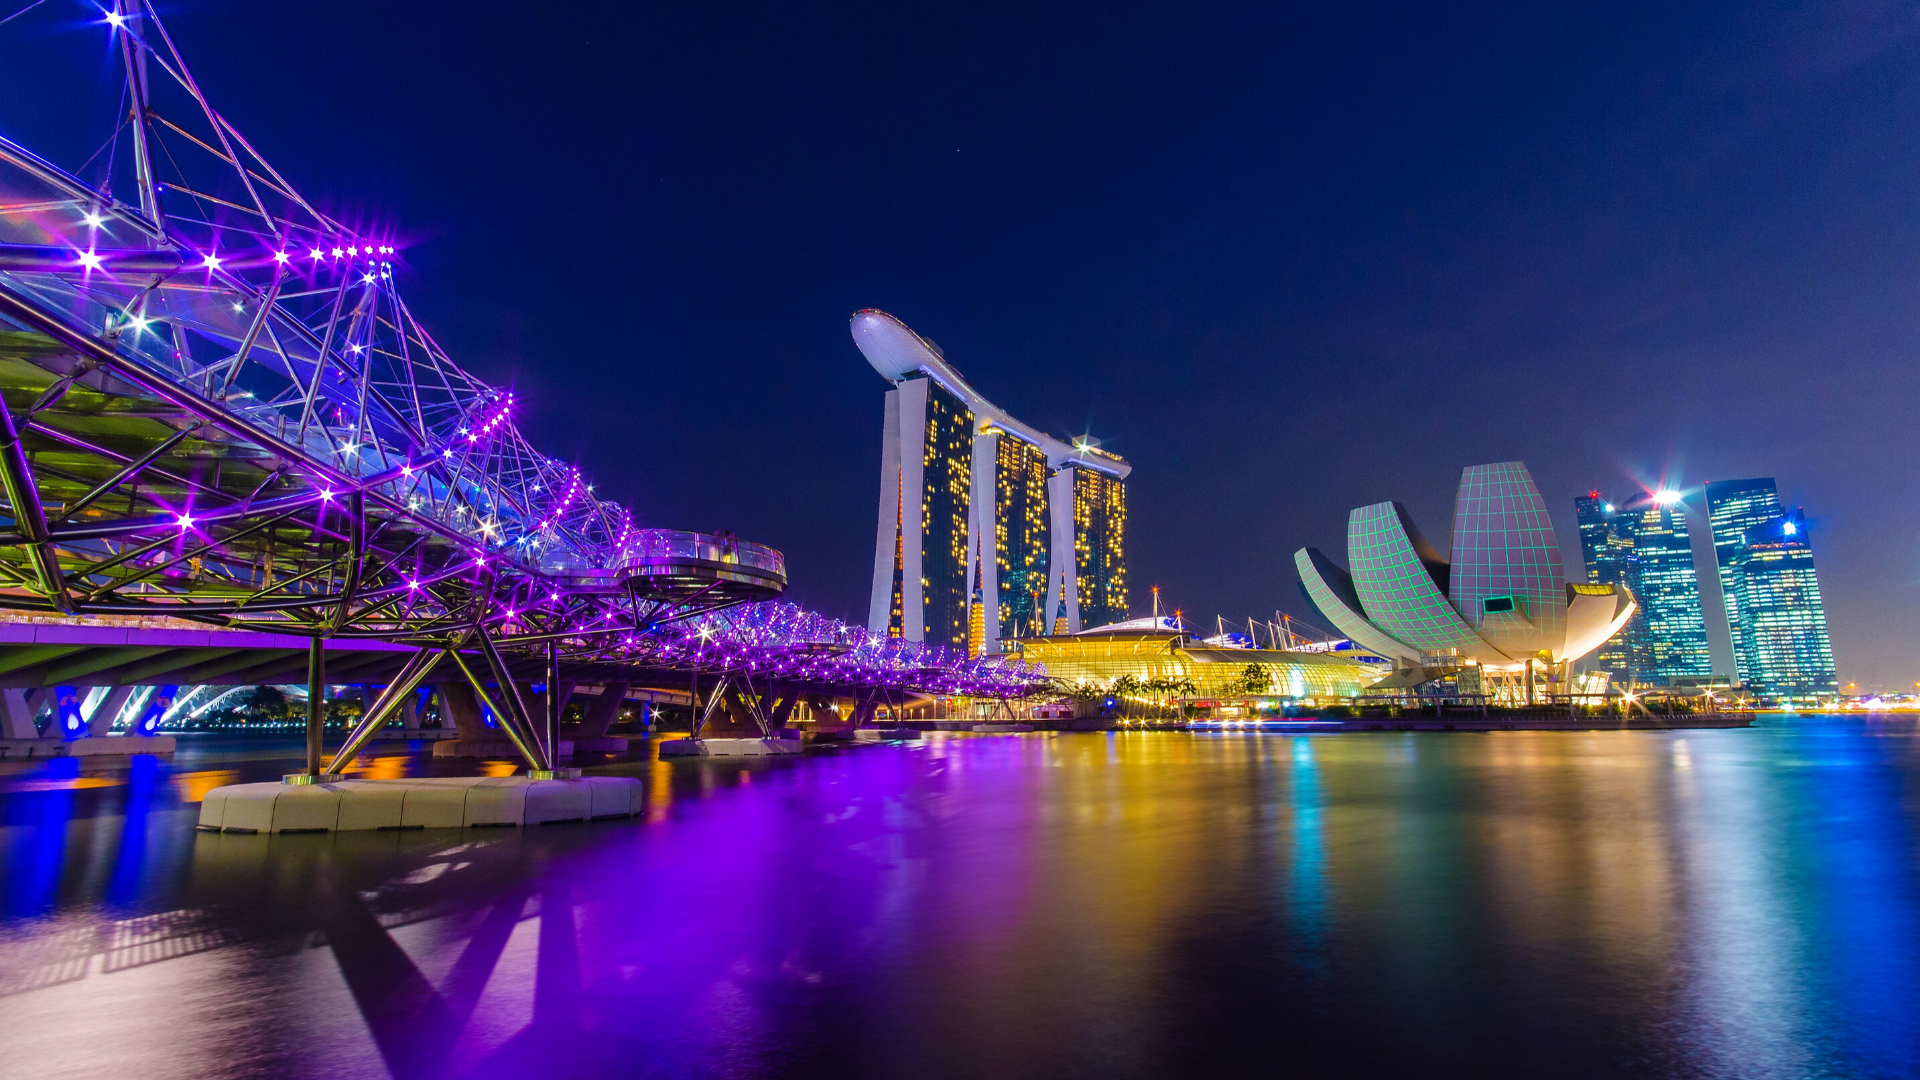 Travel Gooru Blogs - 5 Best Places in Singapore Everyone Should Visit Once